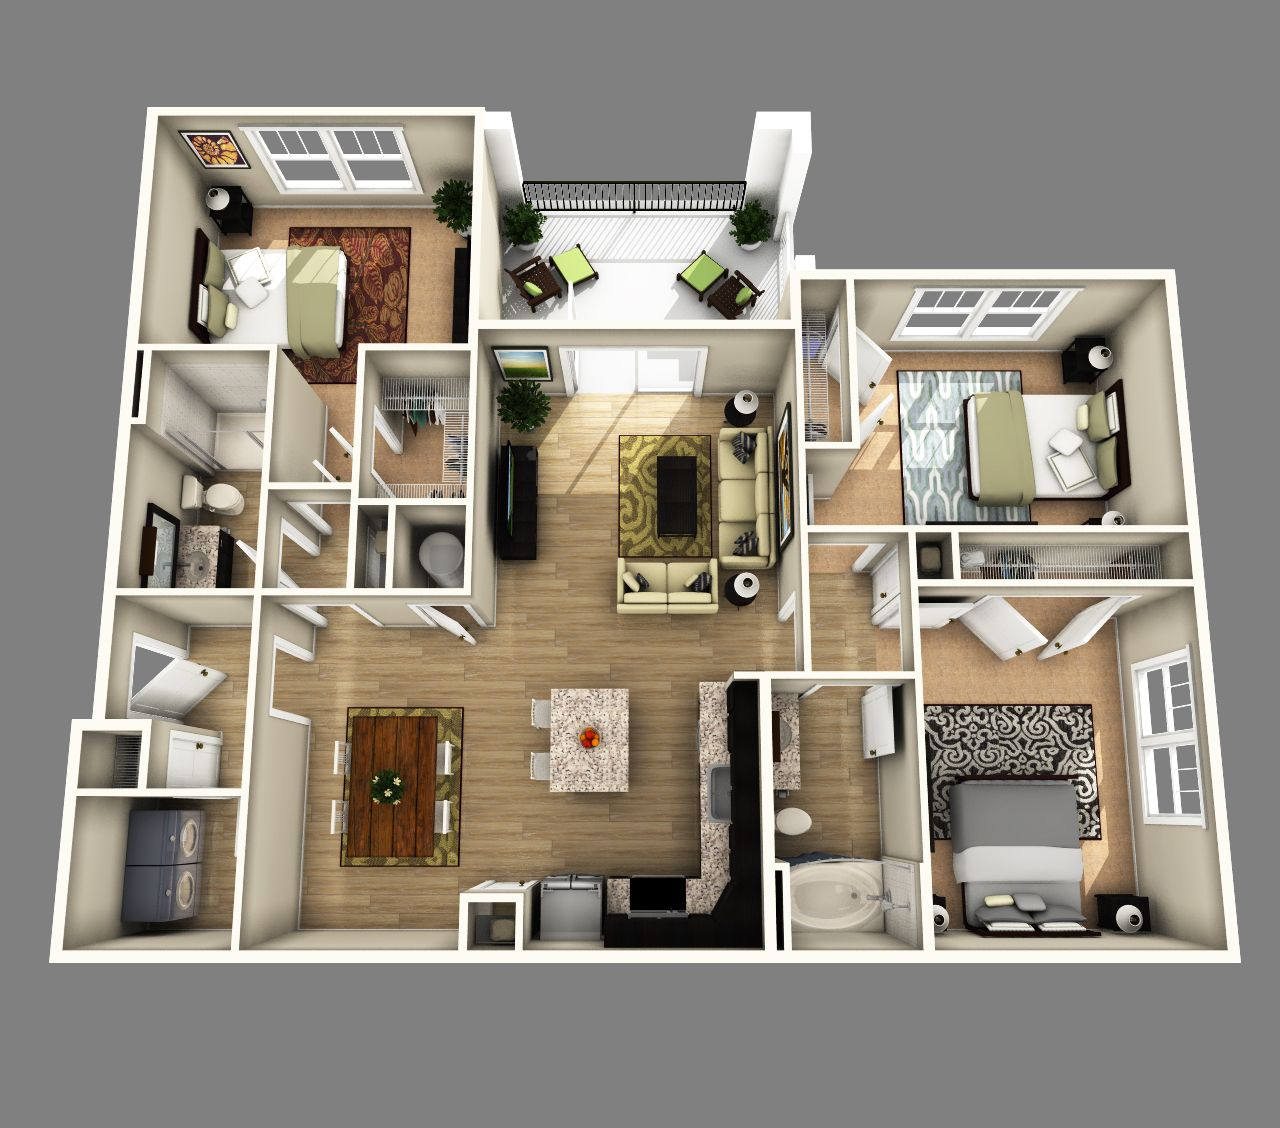 apartment 3 bedroom. 3 Bedrooms Apartments  http www designbvild com 4350 bedrooms